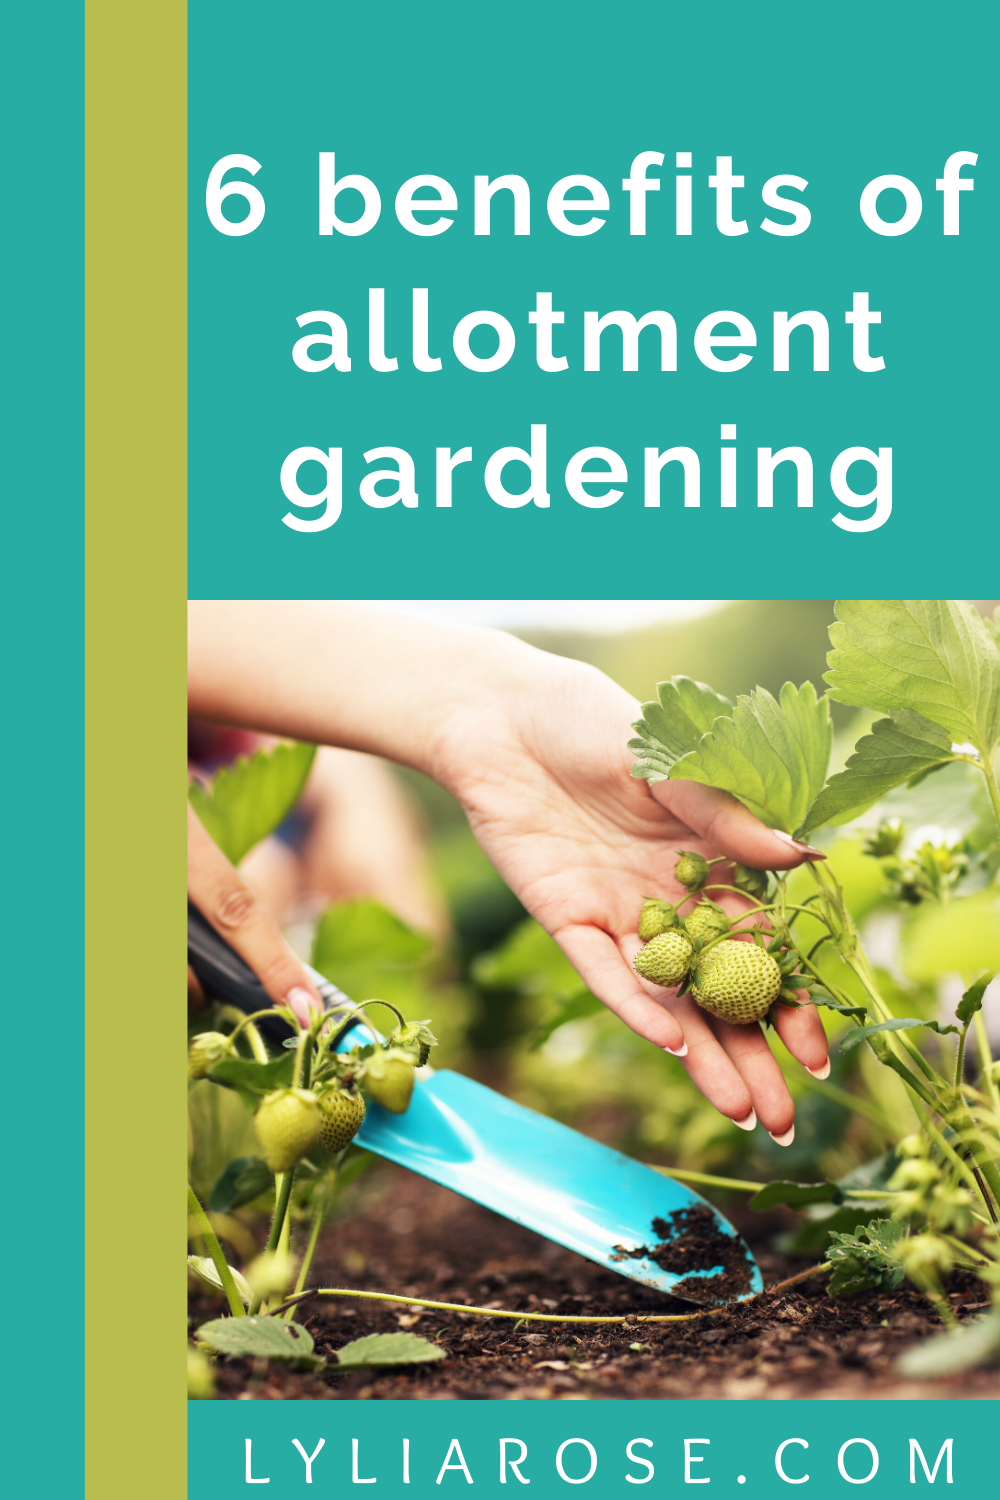 6 benefits of allotment gardening (1)